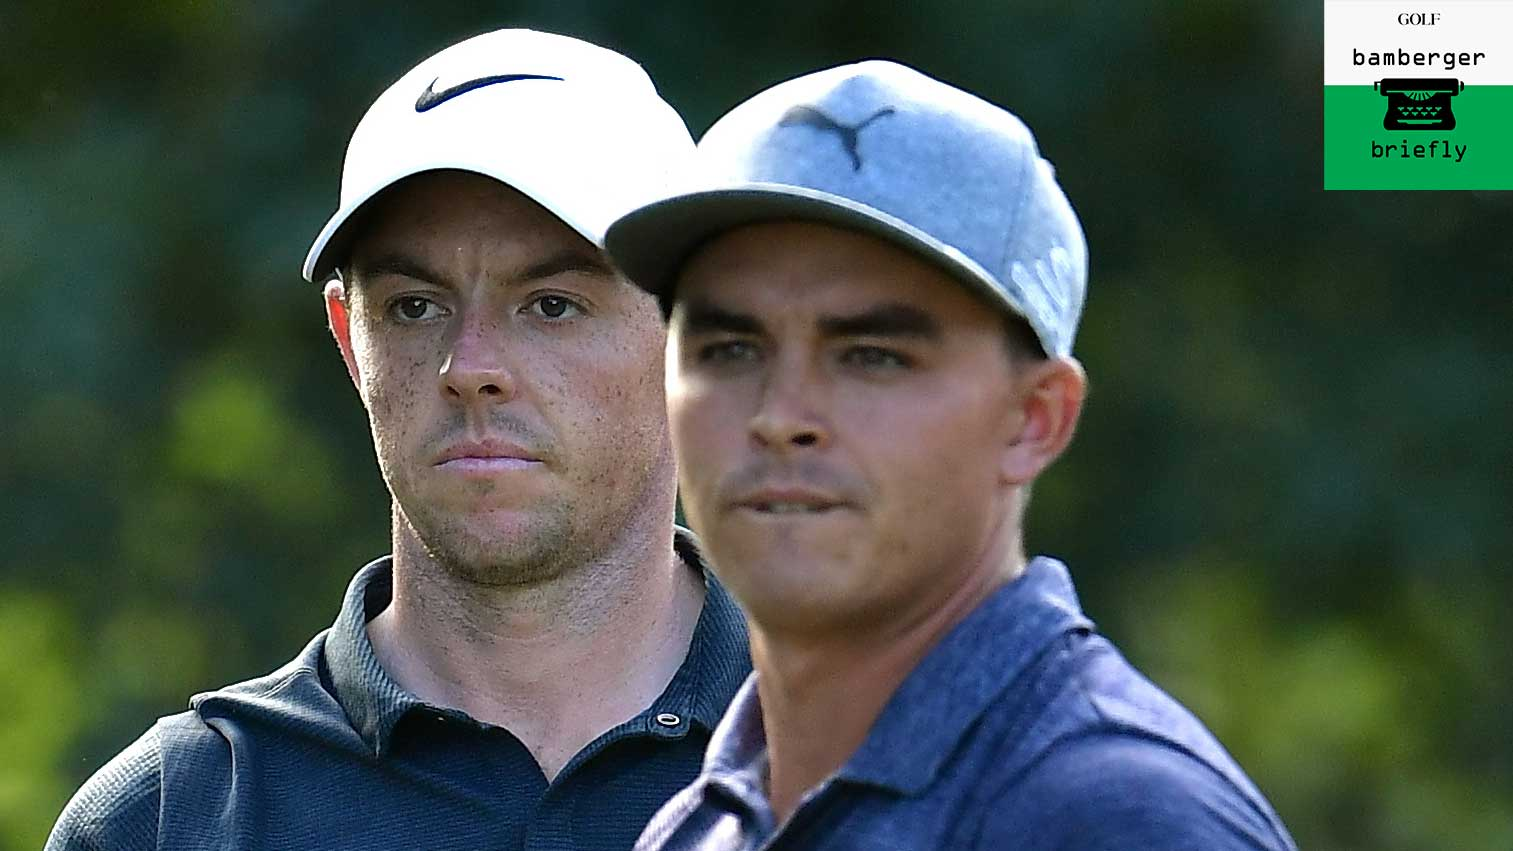 Rory McIlroy of Northern Ireland and Rickie Fowler of the United States prepare to tee off on the 16th tee during the first round of the 2017 PGA Championship at Quail Hollow Club on August 10, 2017 in Charlotte, North Carolina.